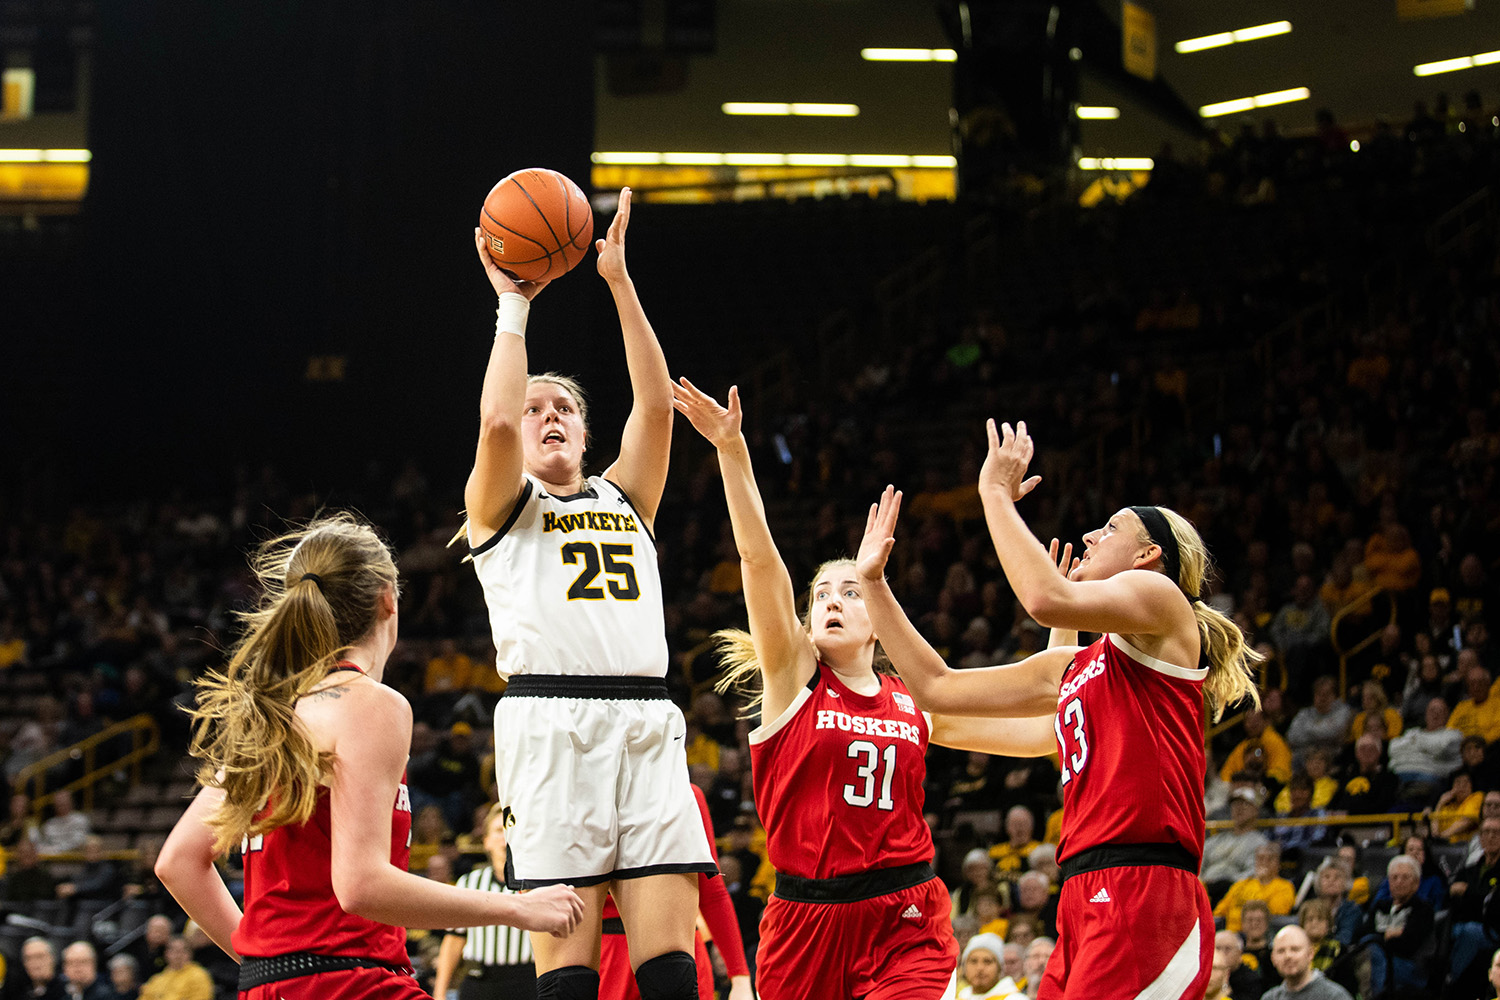 Iowa center Monika Czinano shoots during a women's basketball game between Iowa and Nebraska at Carver-Hawkeye Arena on Thursday. The Hawkeyes defeated the Cornhuskers 76-60.